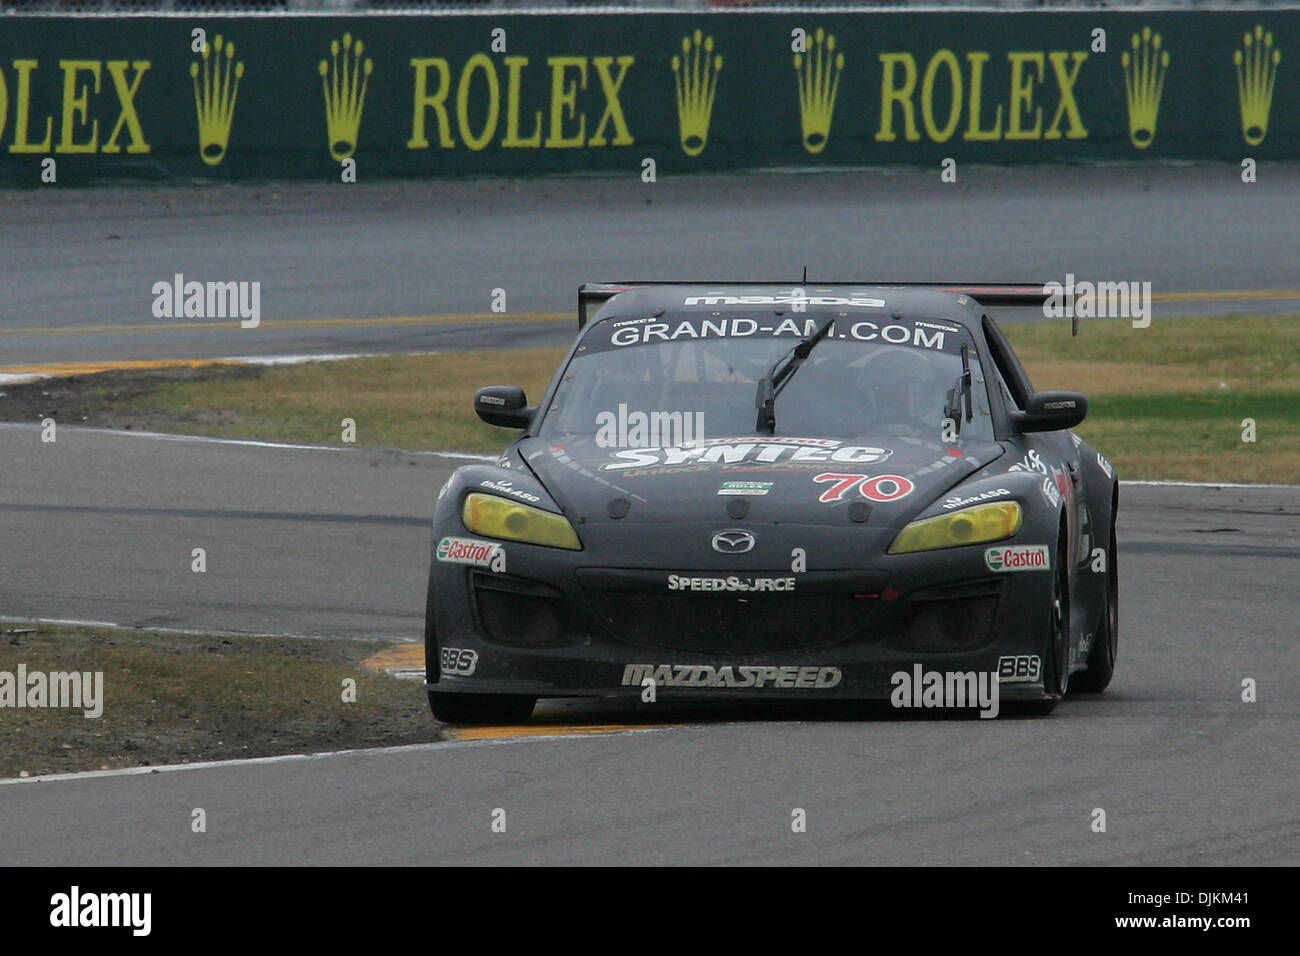 The No. 70 Mazda RX-8, GT class winner, races through the chicane ...